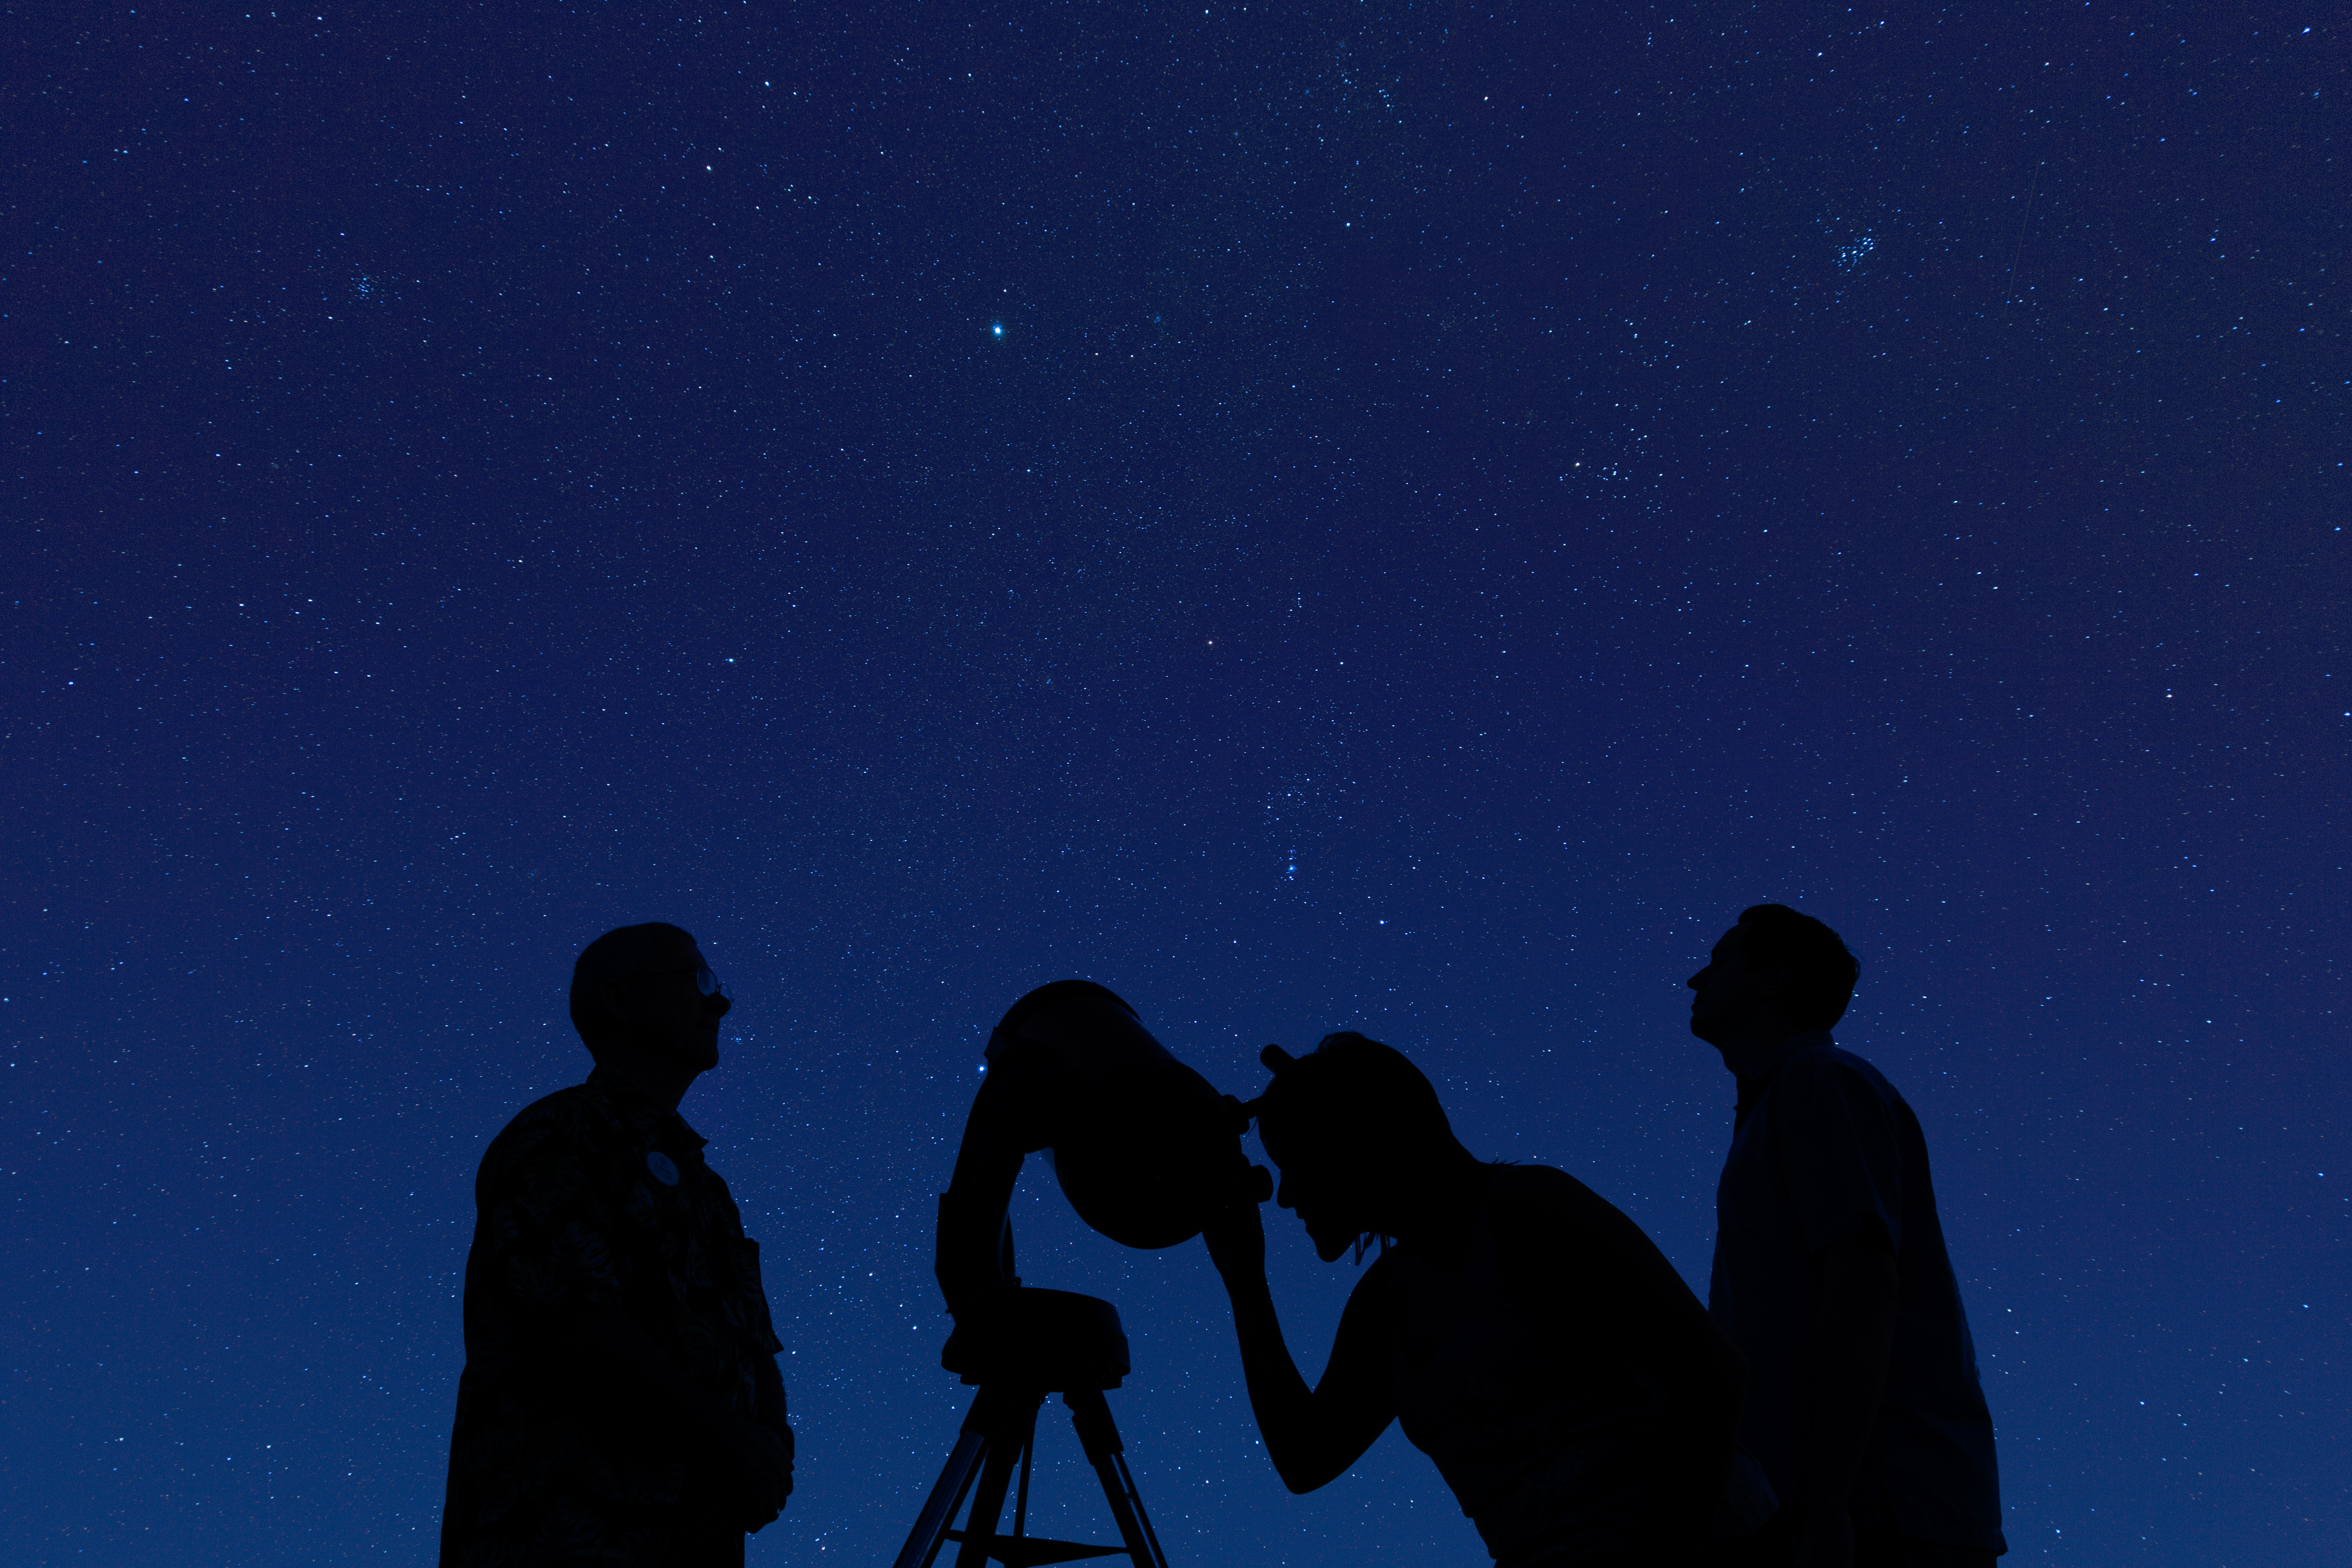 Guests take turns looking through a telescope during Tour of the Stars.